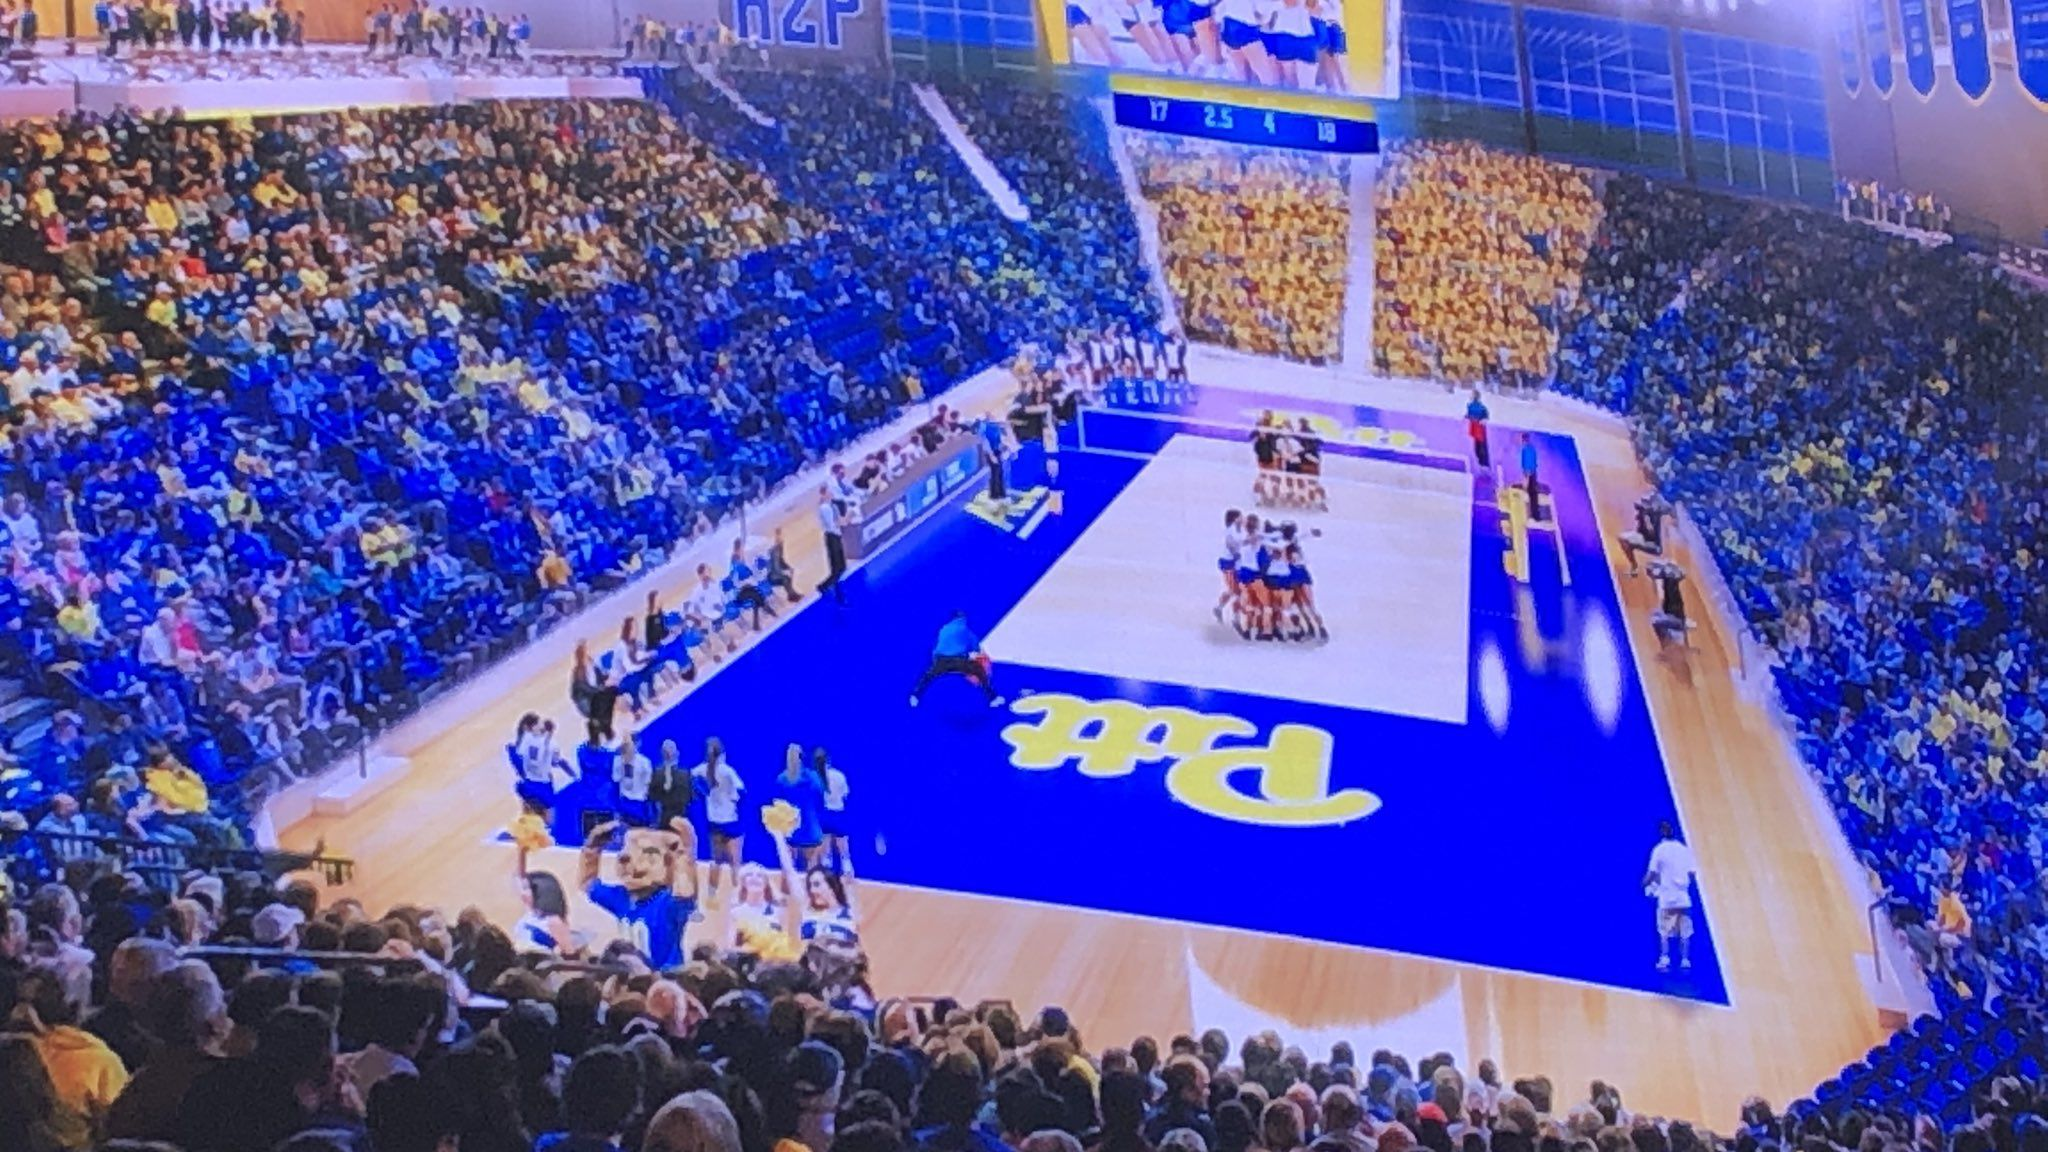 New state-of-the-art sports complex to serve Pitt students for decades to come